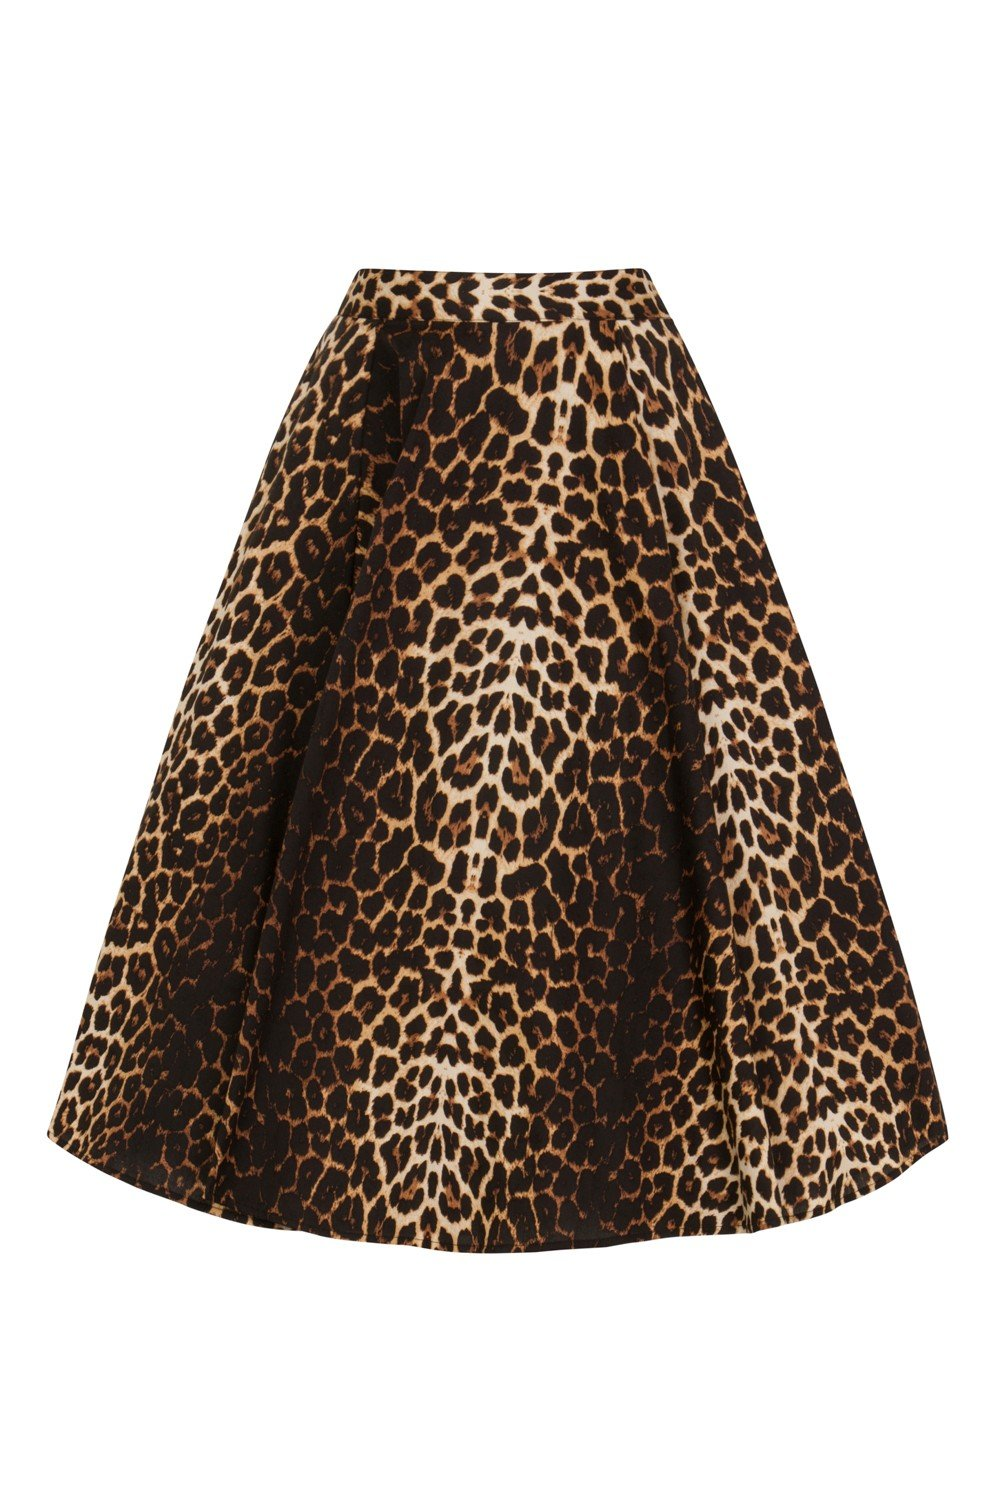 Jupe circulaire leopard